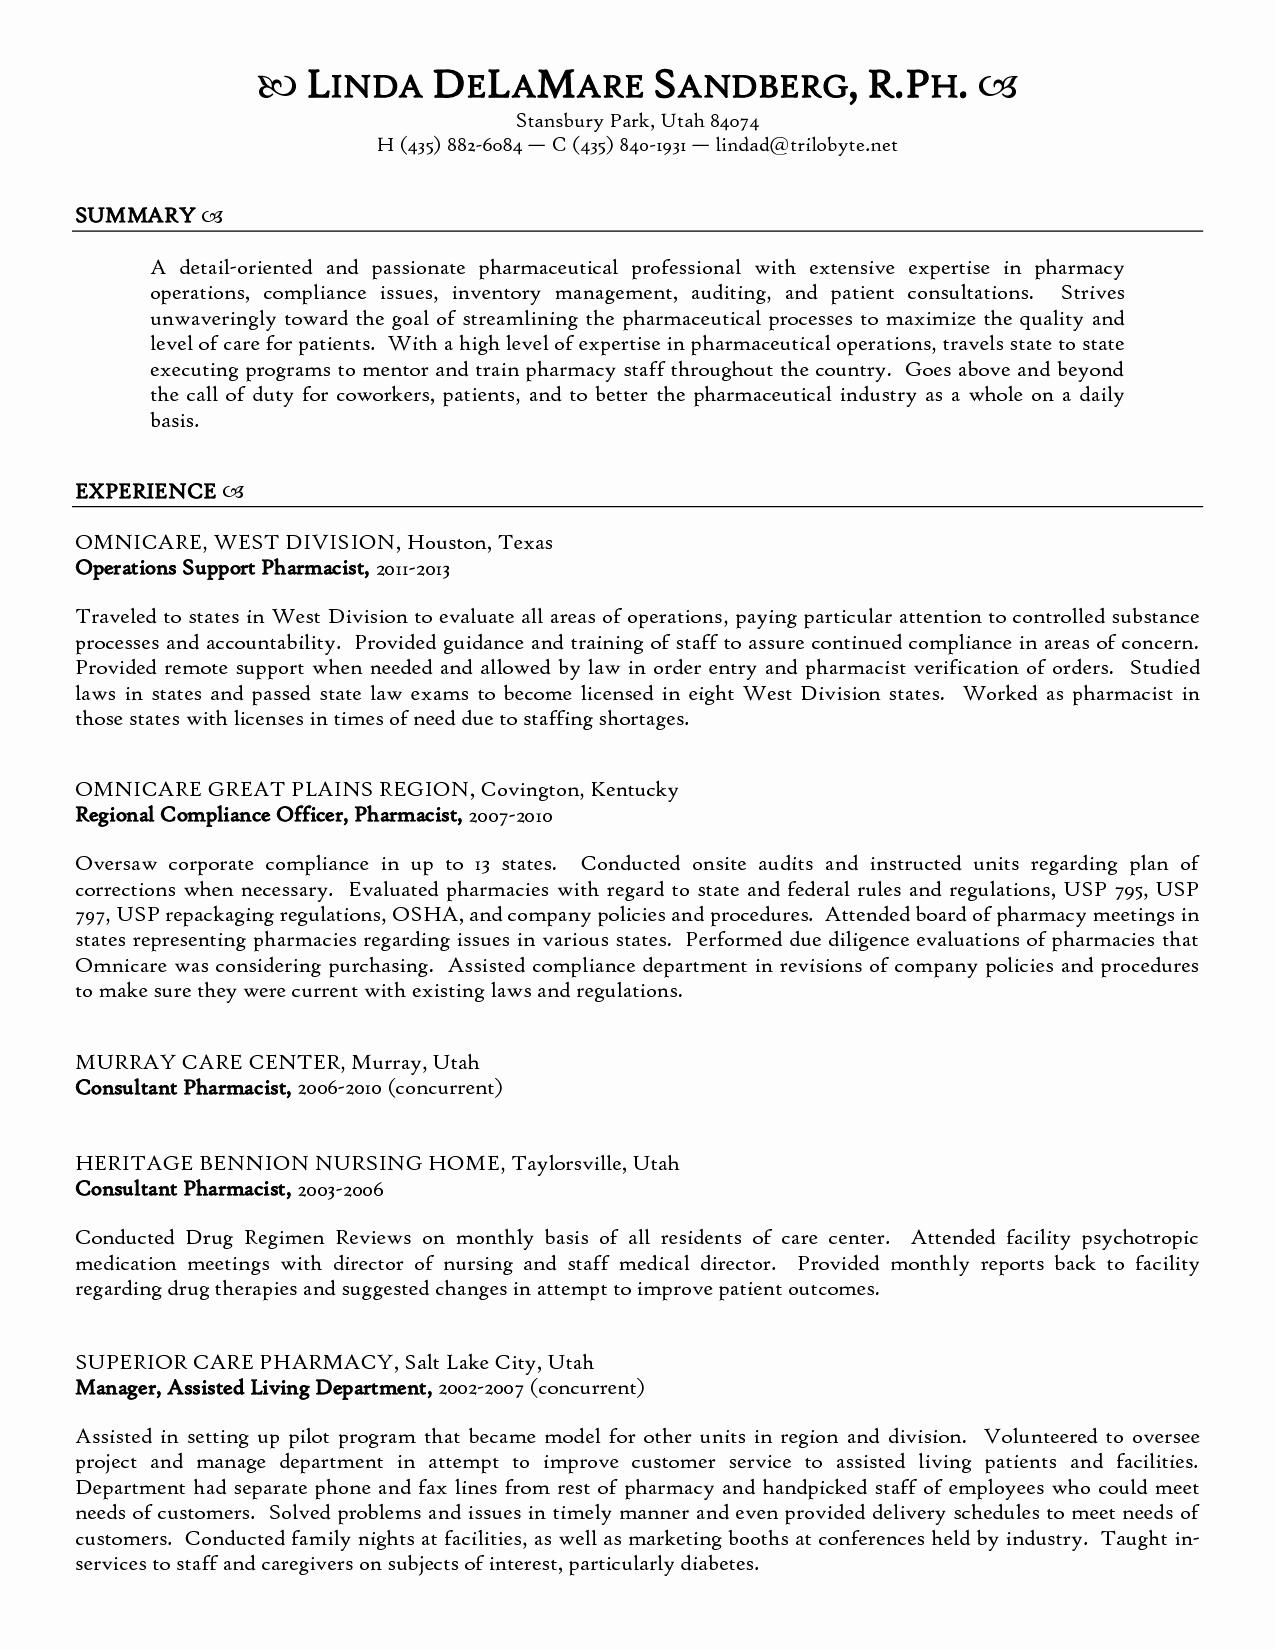 Technical Resume Template - Resume format for Experienced Technical Support Beautiful Pharmacy